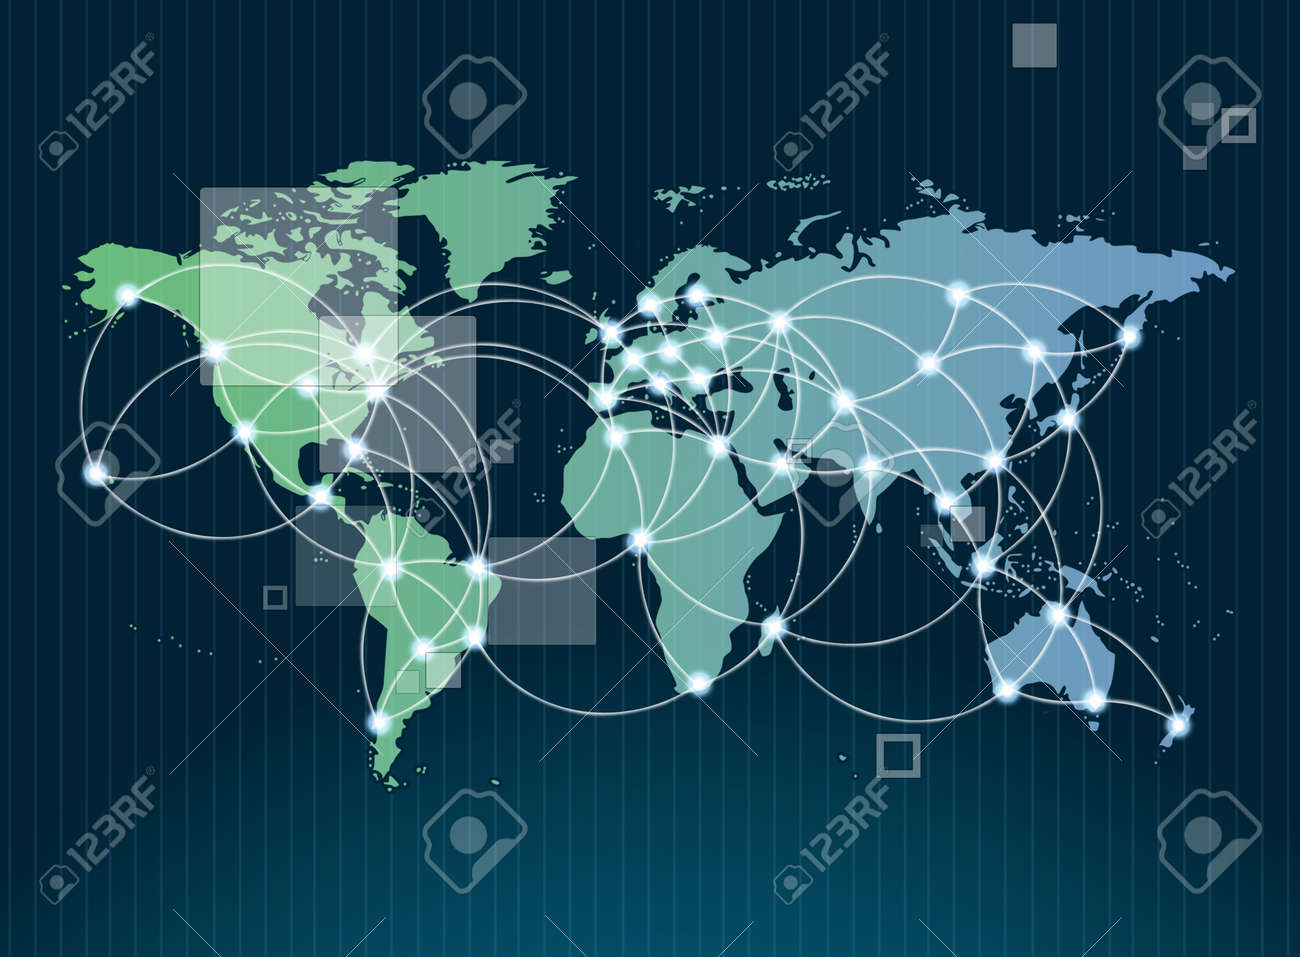 Global networking symbol of international comunication featuring a world map concept with connecting technology communities using computers and other digital devices Stock Photo - 11998840